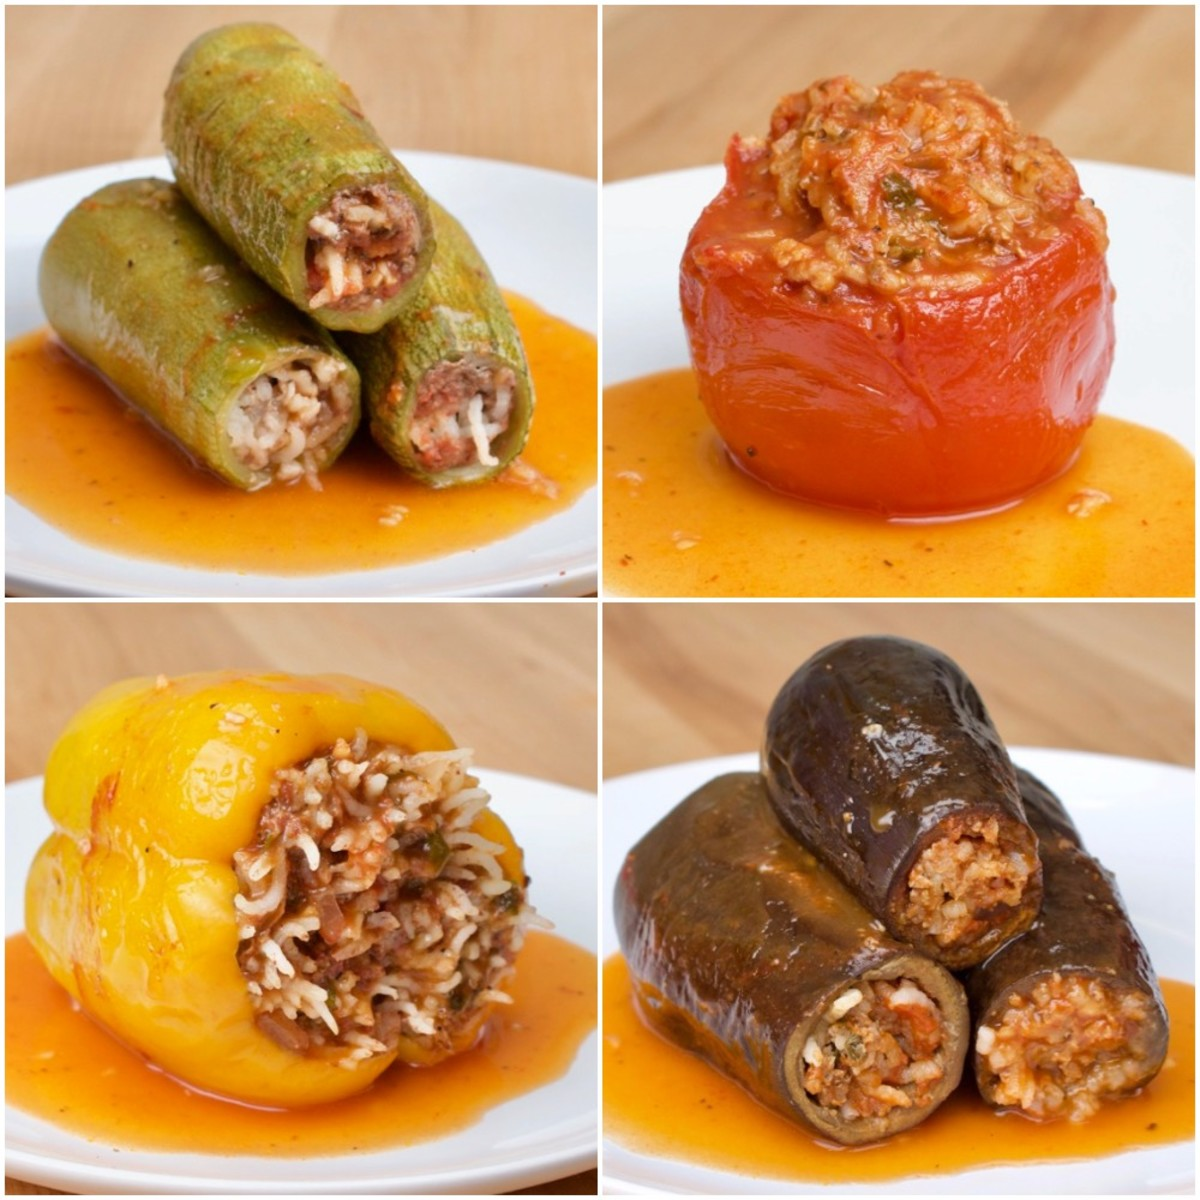 middle-eastern-stuffed-vegetables-4-wayss-jewlish